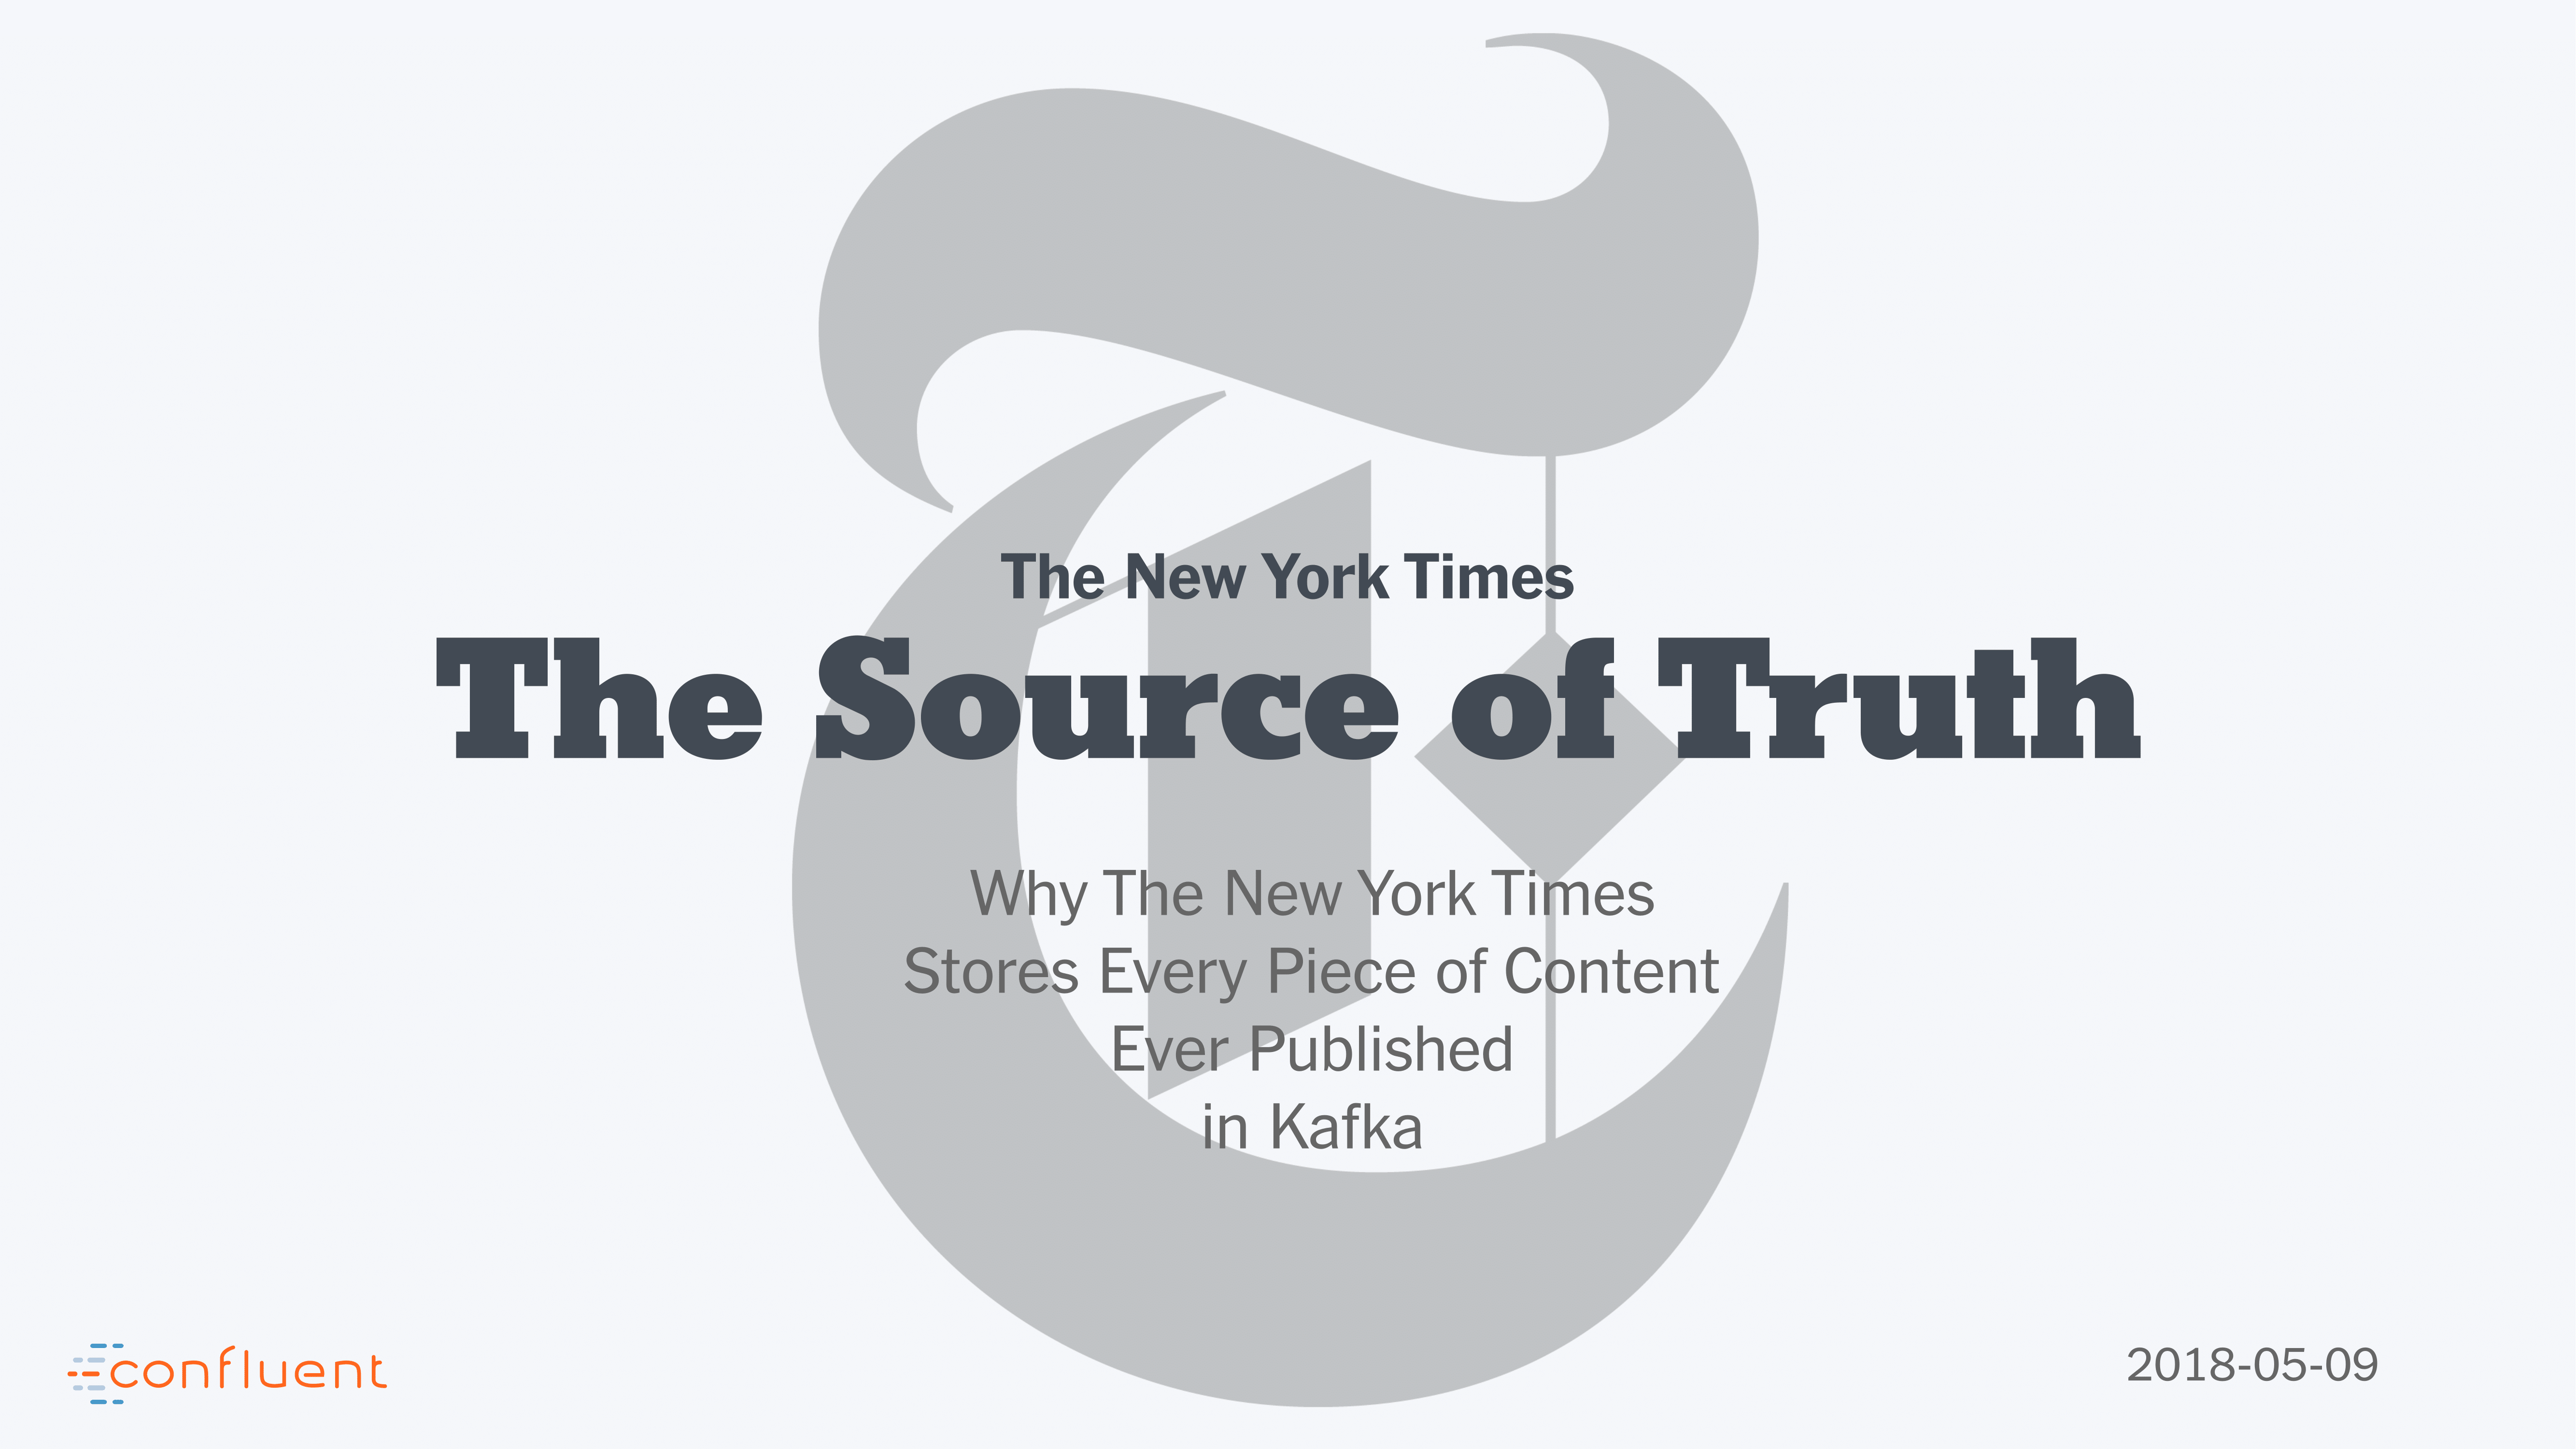 Apache Kafka<sup>®</sup> Delivers a Single Source of Truth for The New York Times